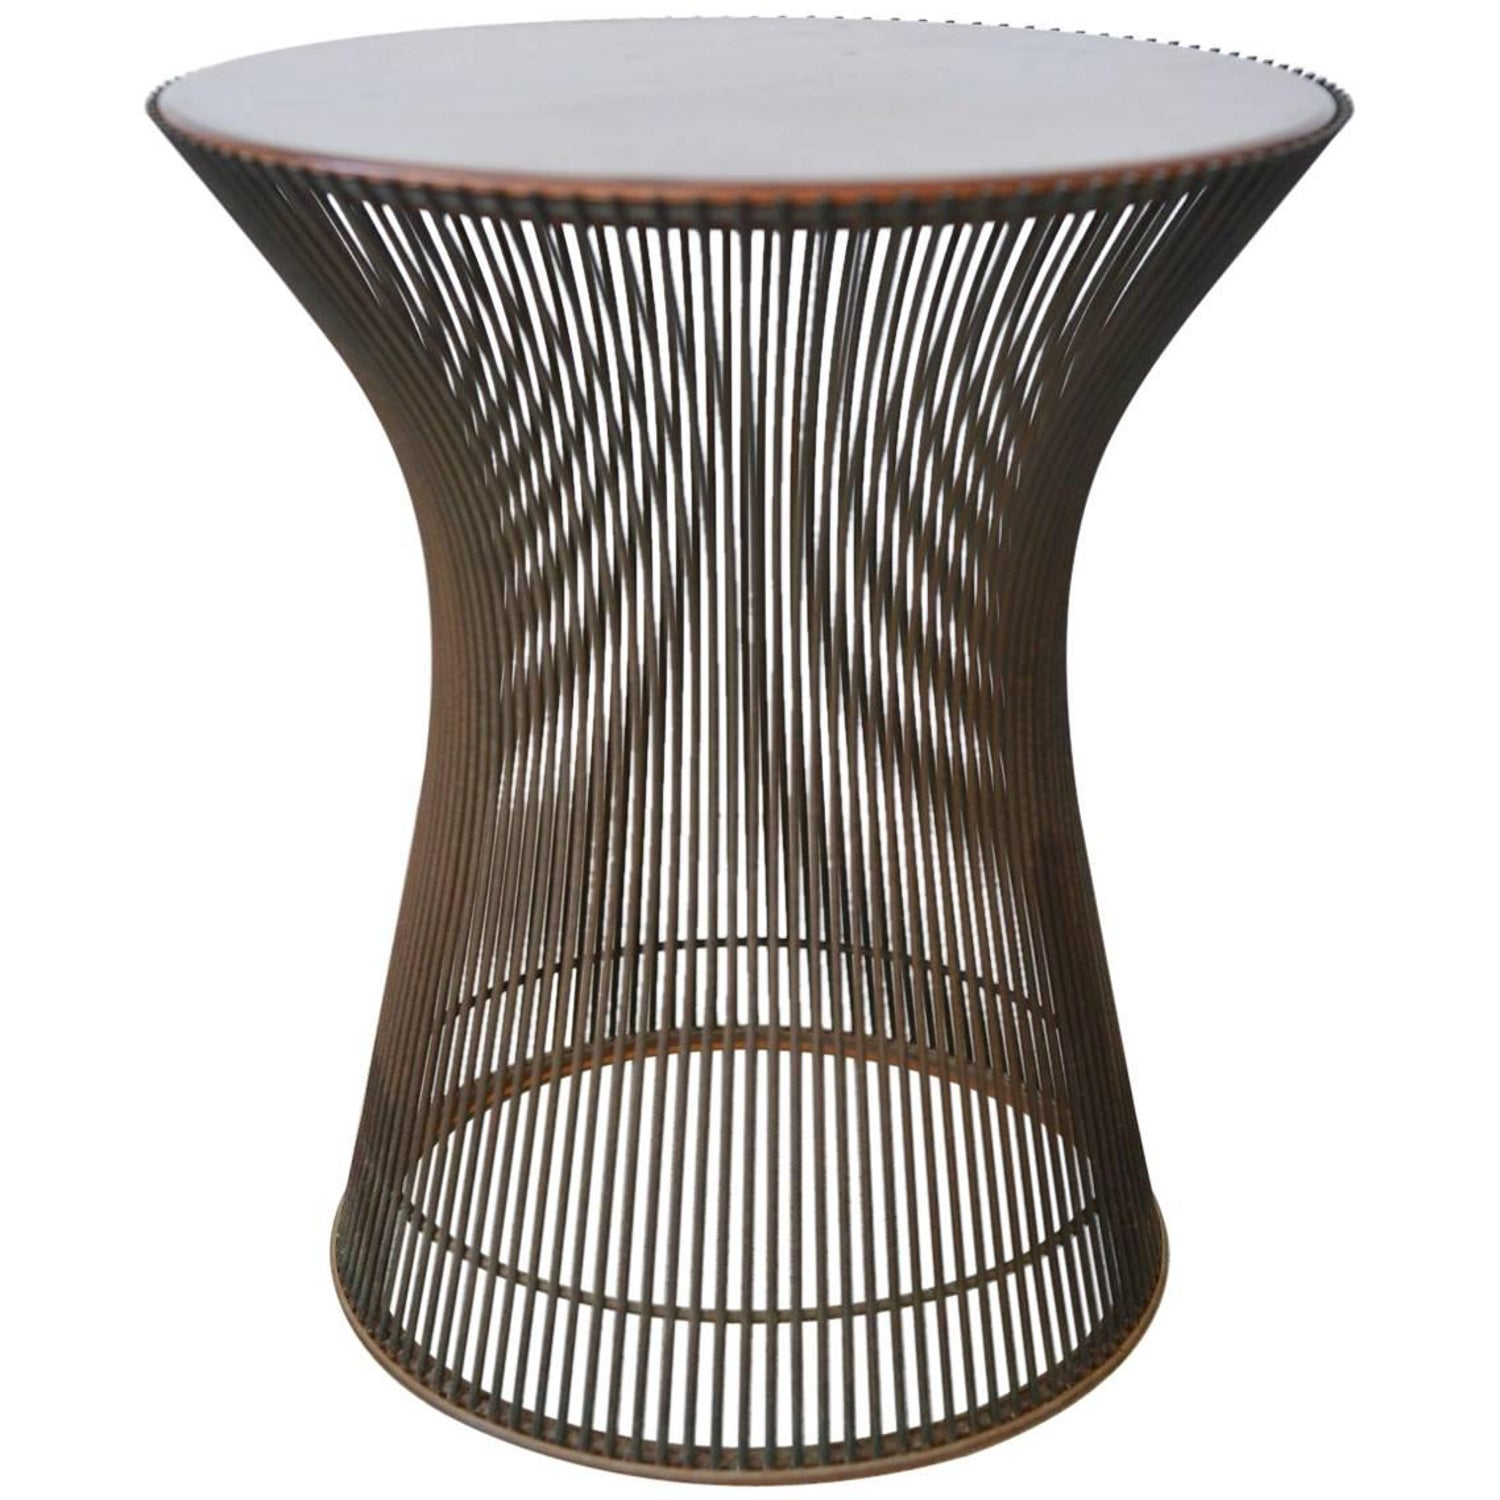 Warren Platner for Knoll Bronze and Rosewood Side Table circa